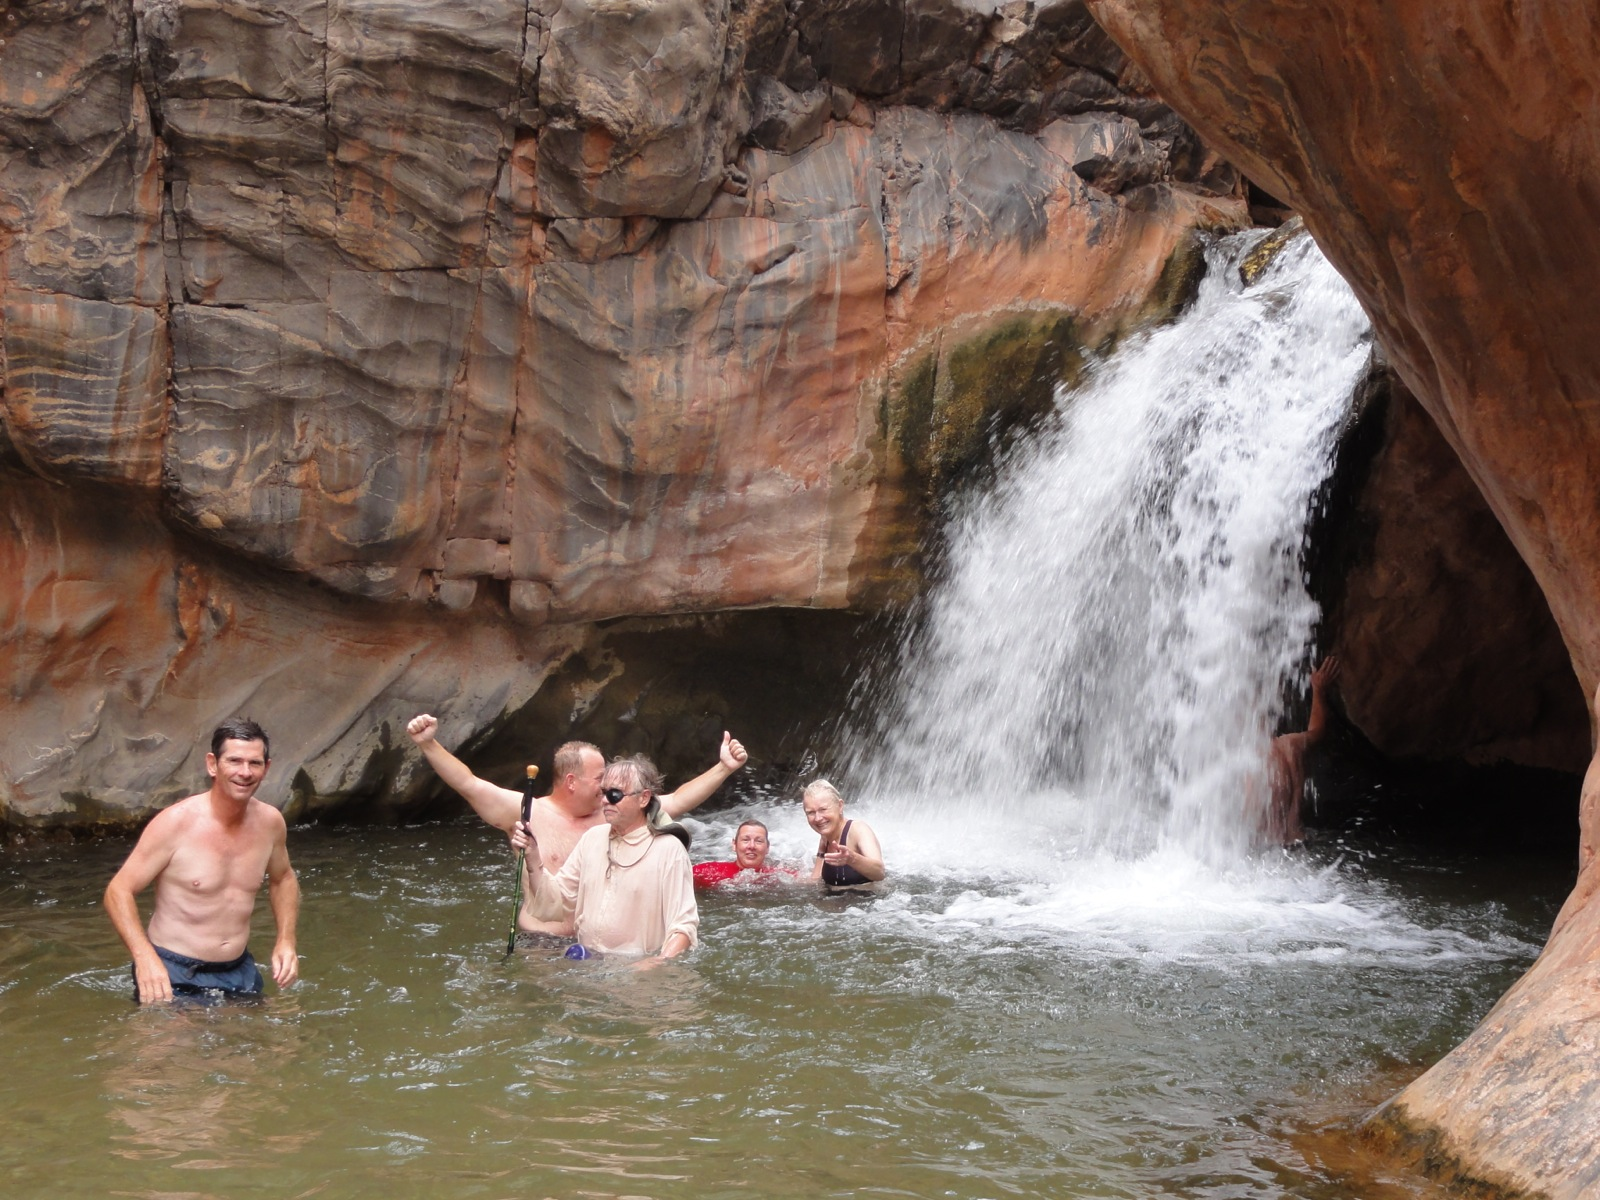 Five participants swim in the water below a small waterfall in a side canyon of the Grand Canyon.